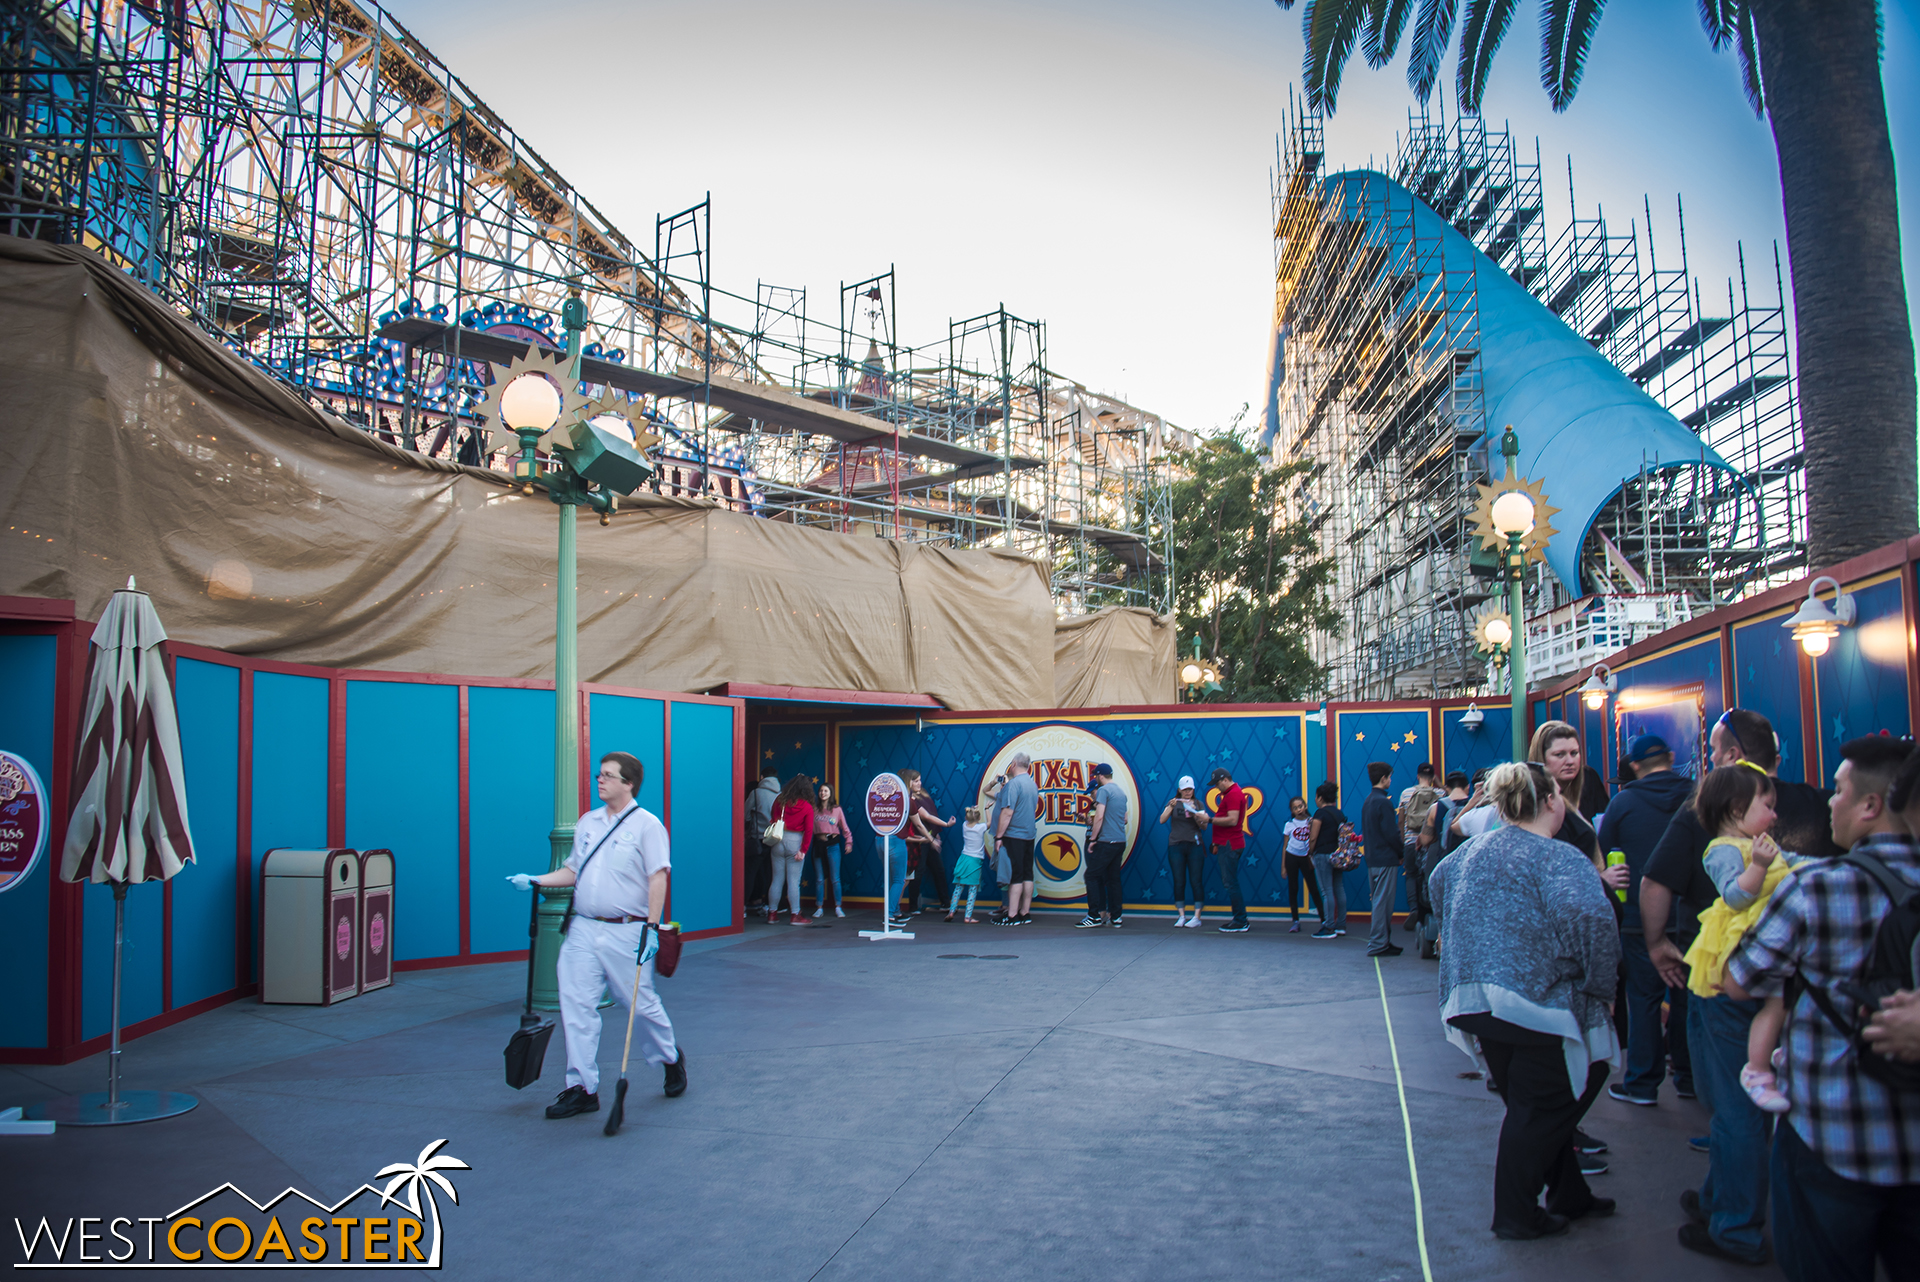 Toy Story Midway Mania remains open during this transformation as well.